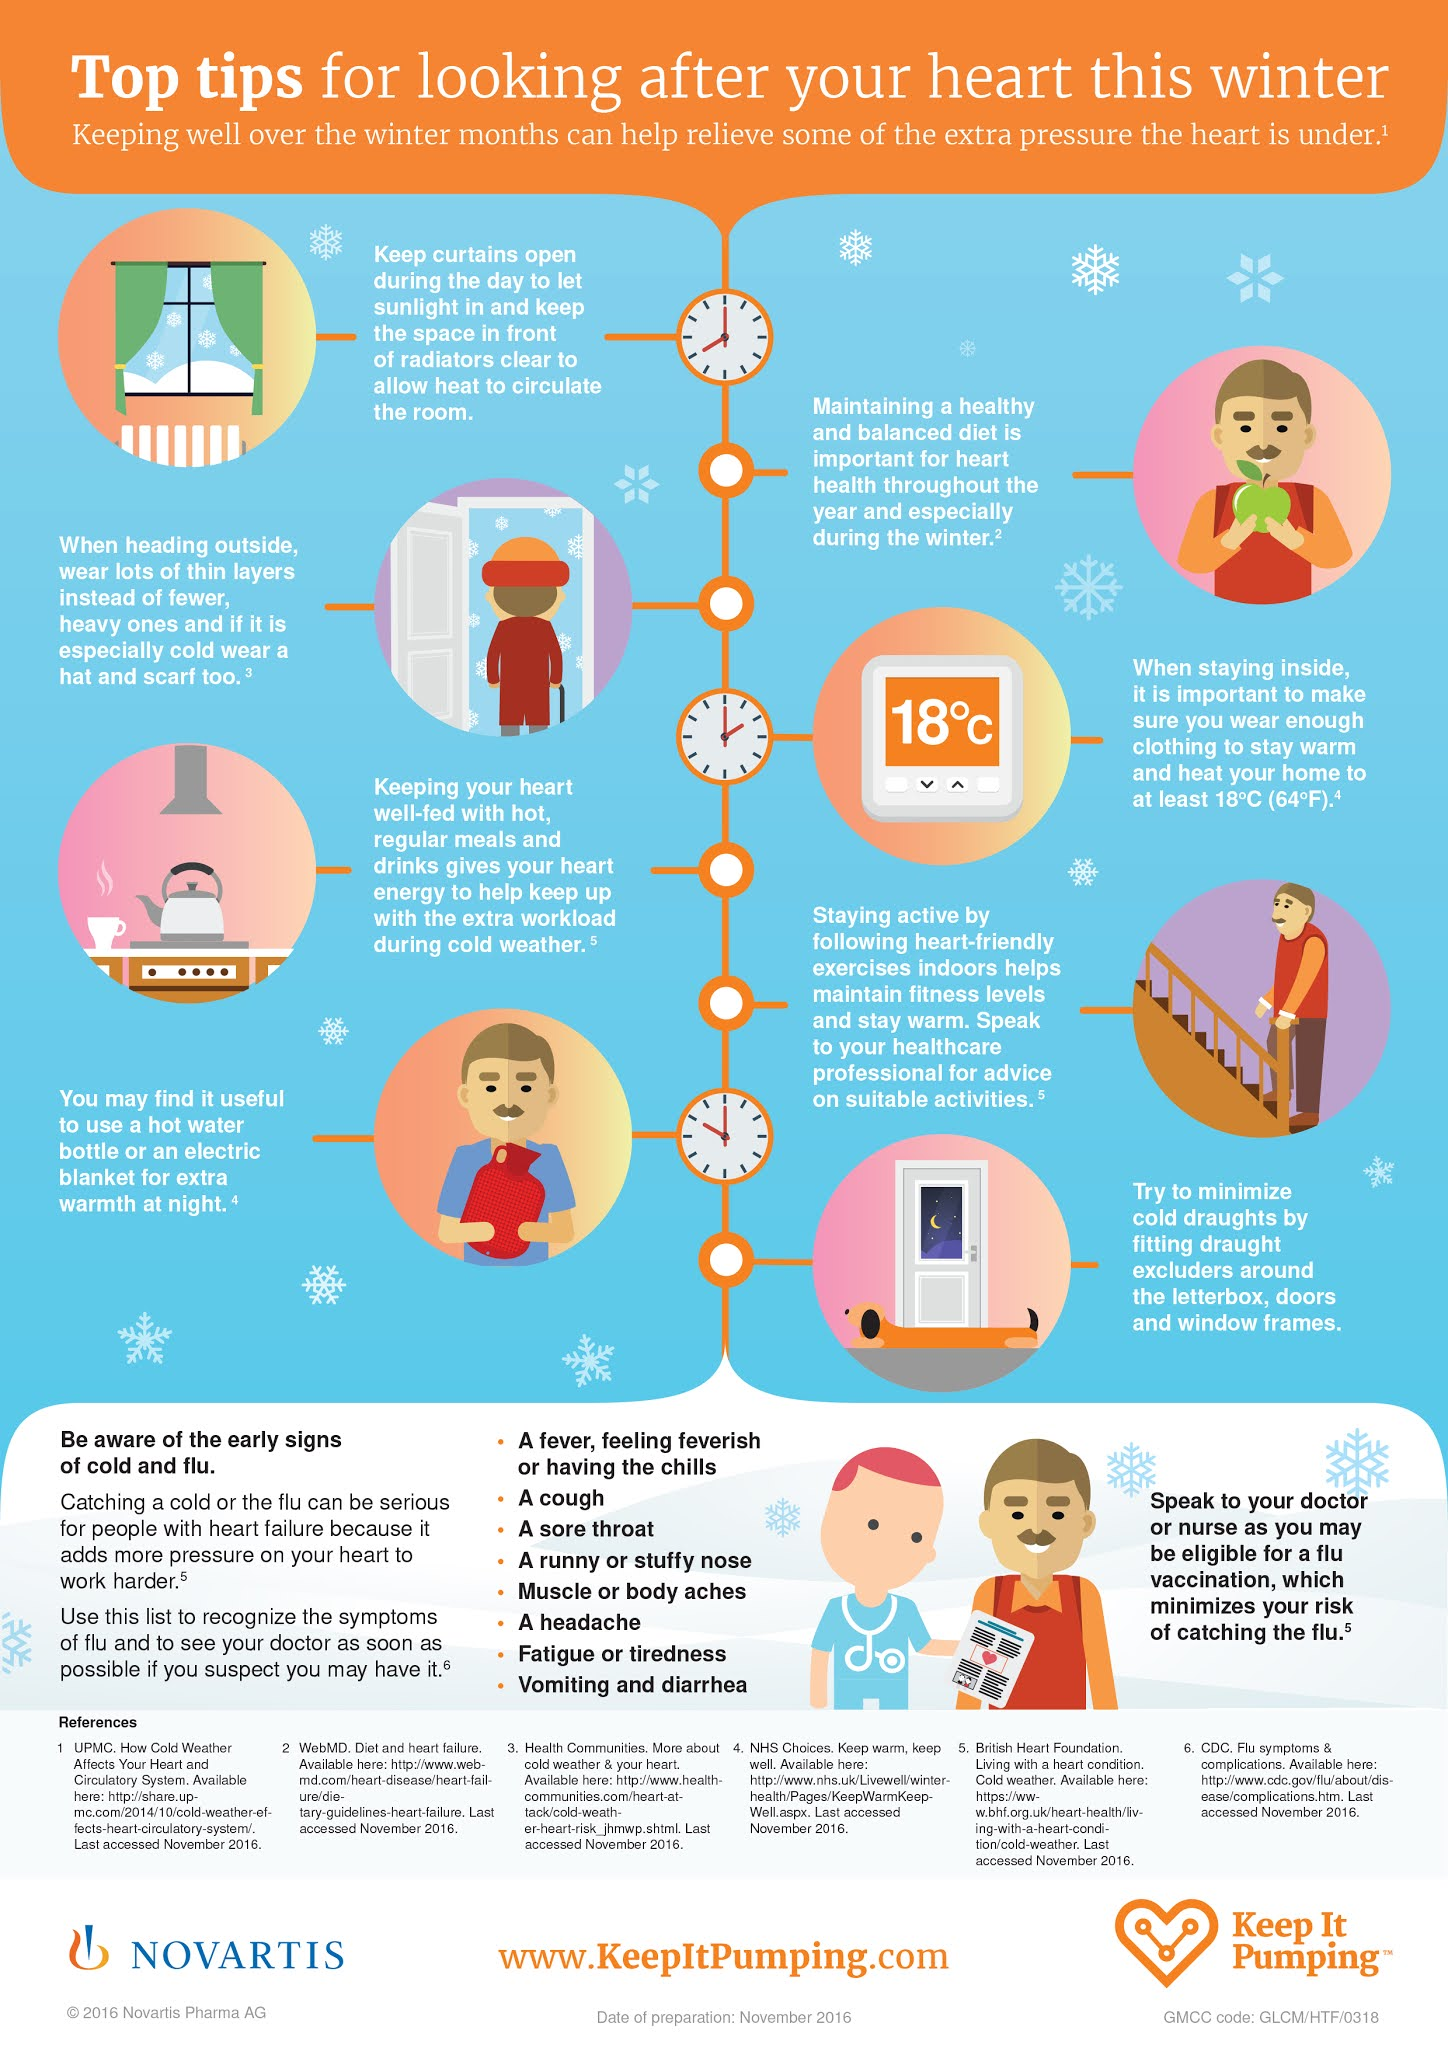 Top Tips For Looking After Your Heart This Winter #infographic